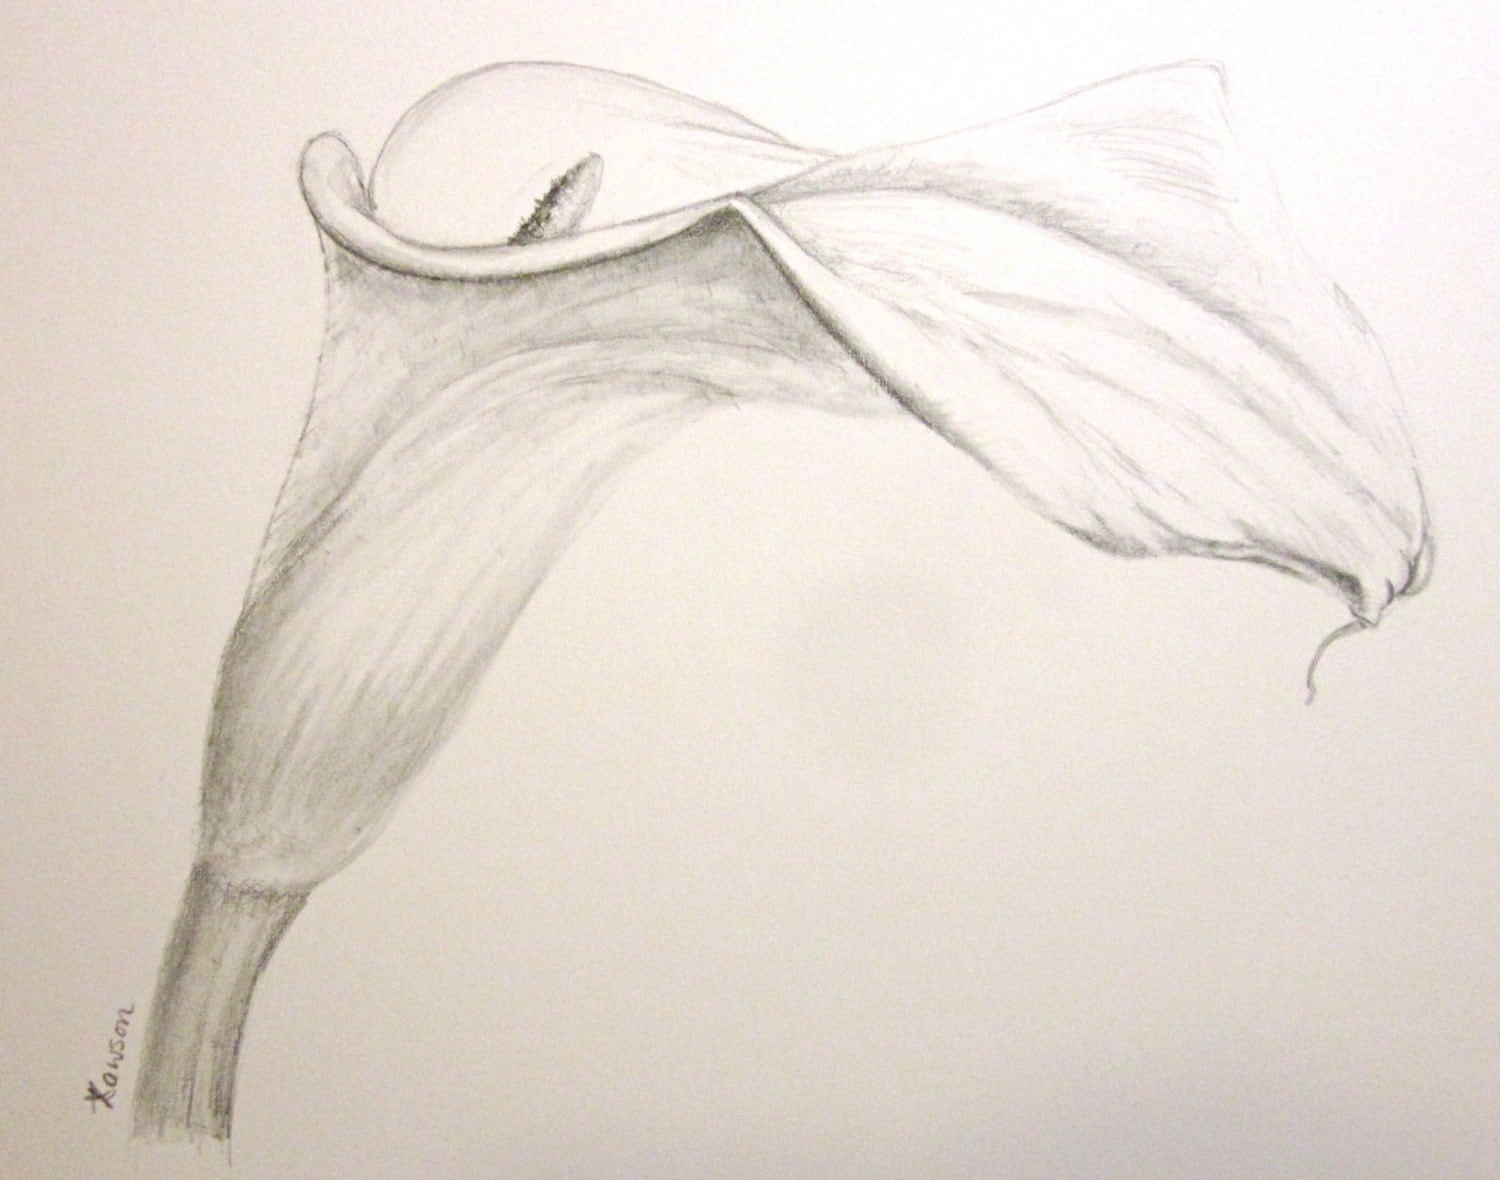 Tiger Lily Drawings In Pencil Lily flower drawingLily Flower Drawings In Pencil